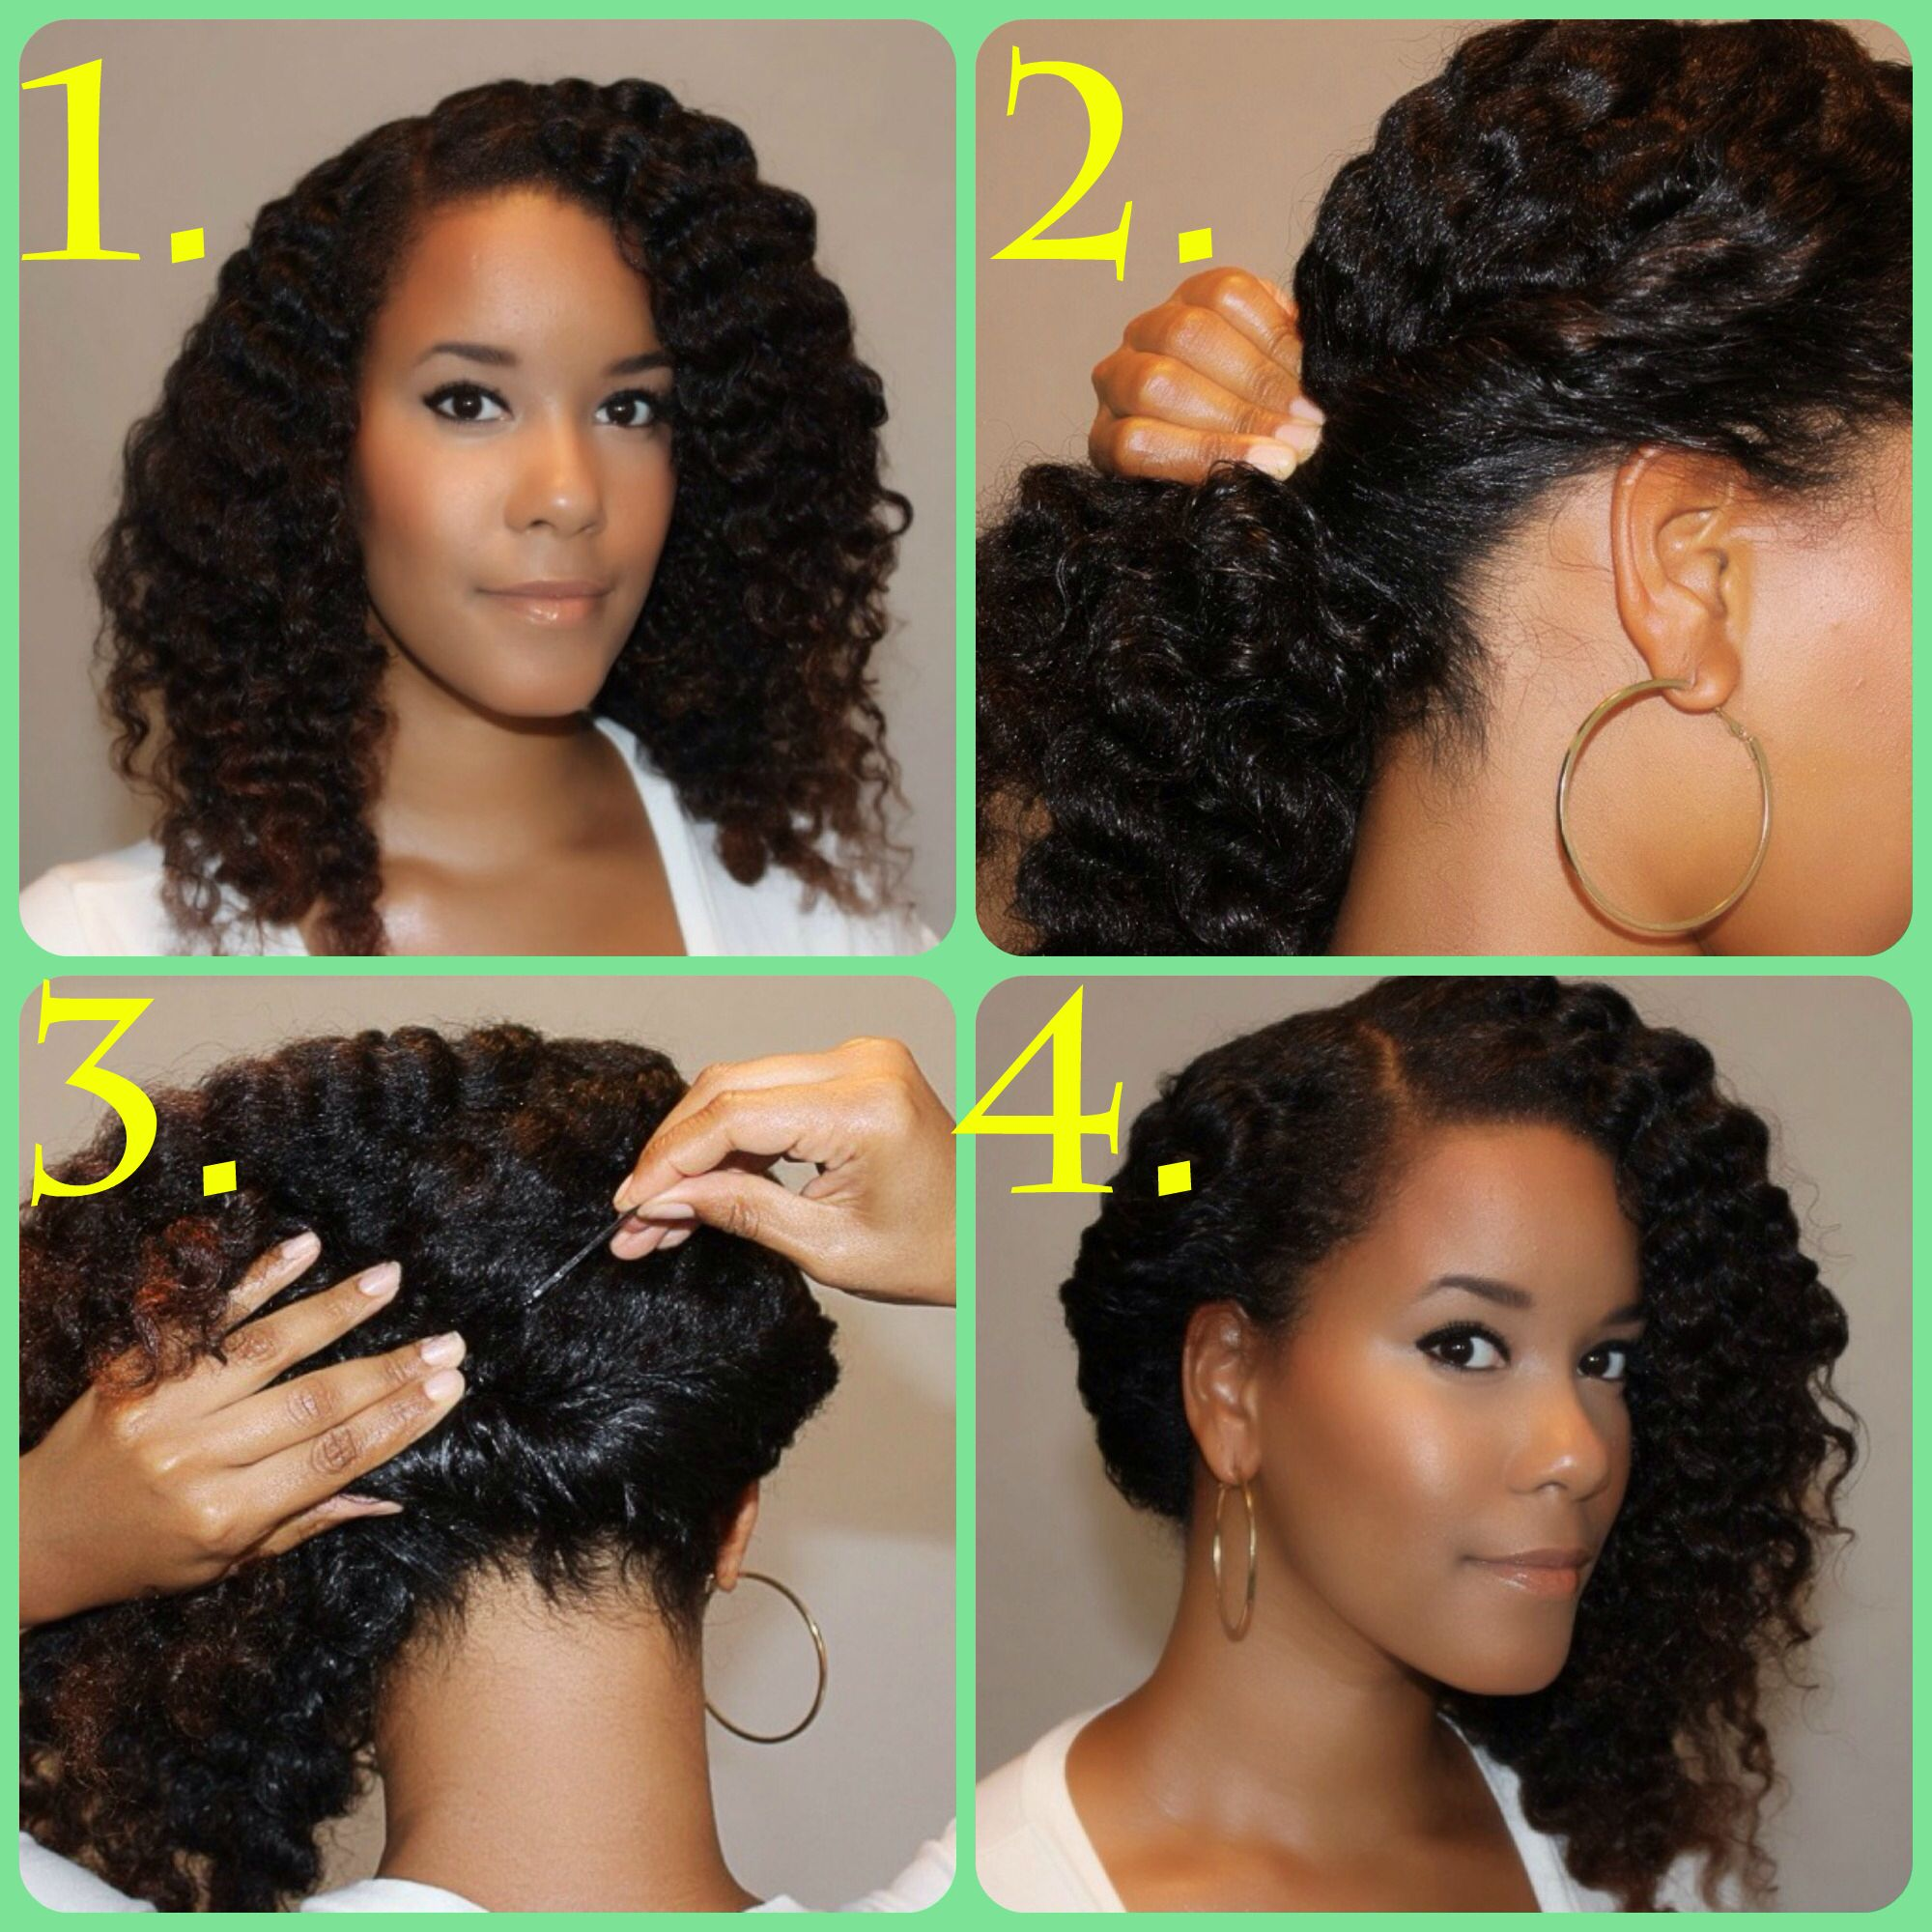 natural hair diy : 5 back to school inspired styles / beauty buzz